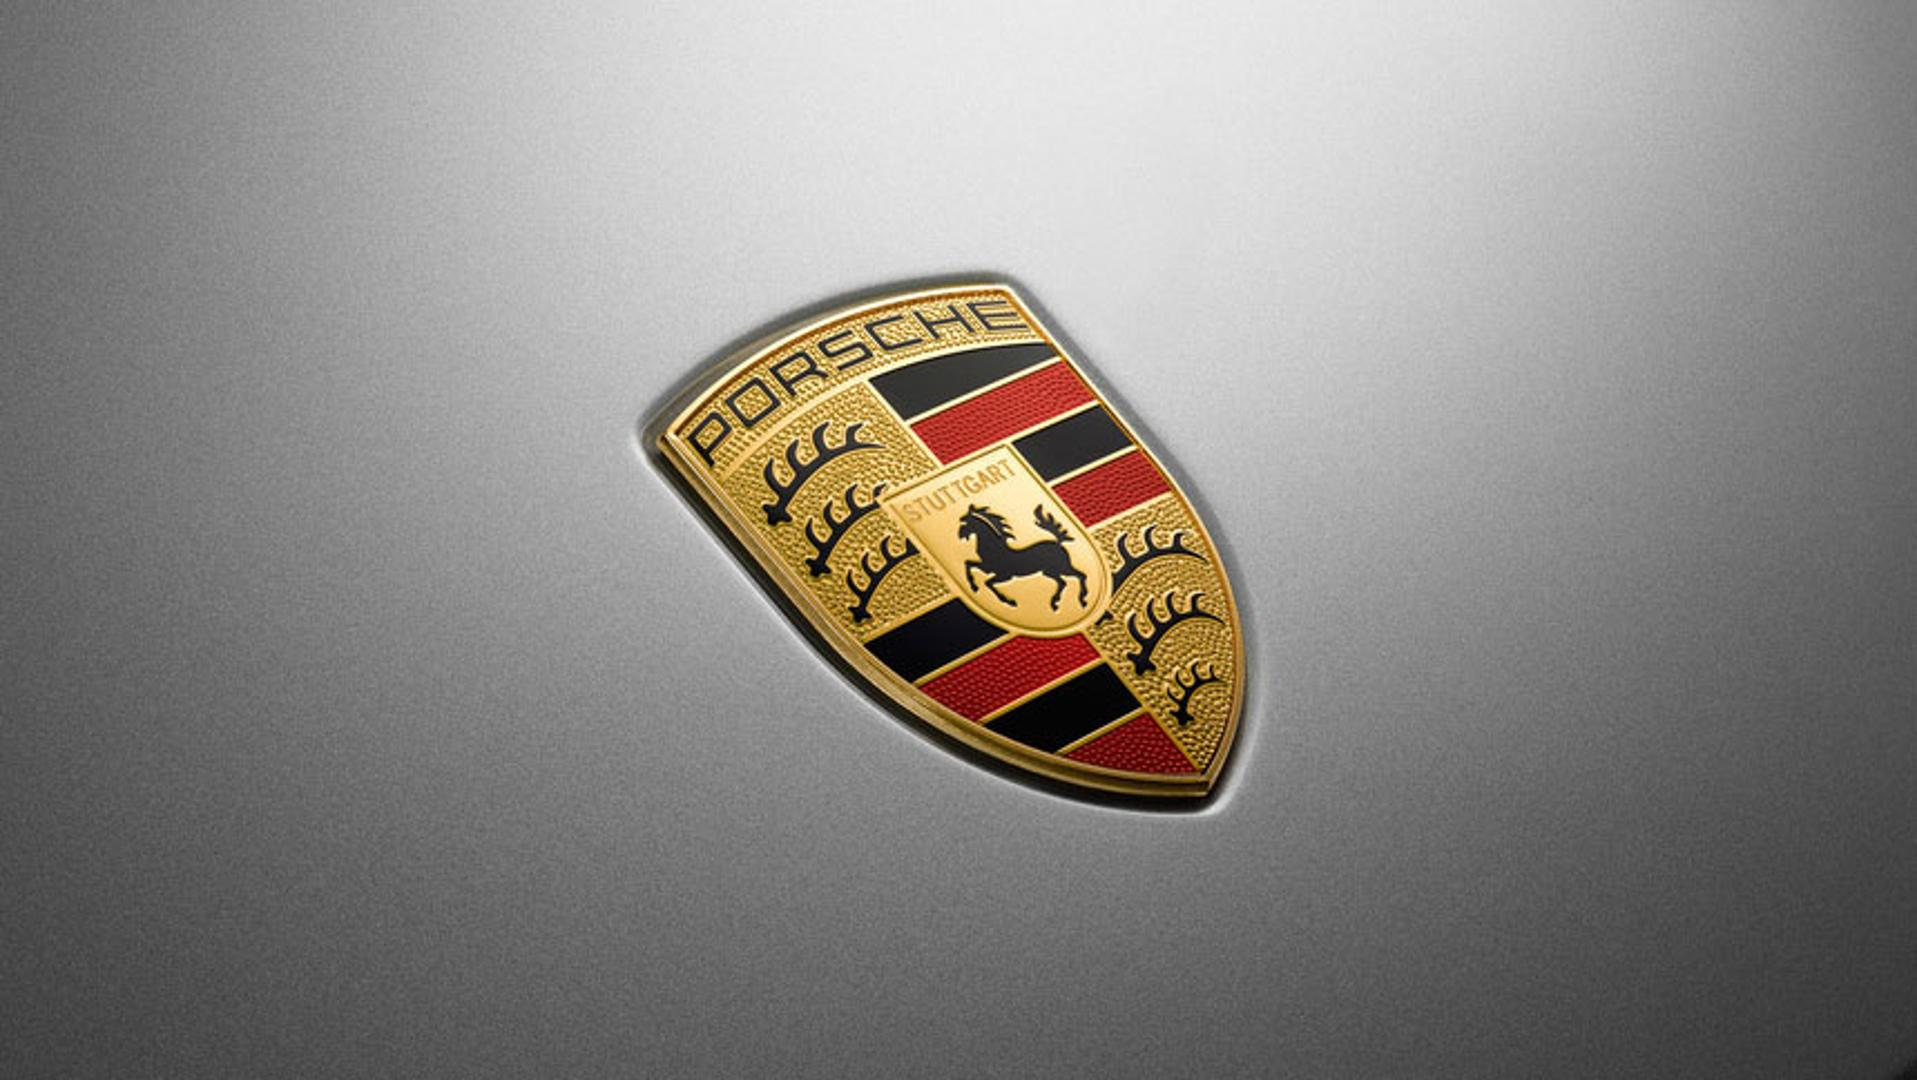 Porsche fined €535m over 'dieselgate' scandal